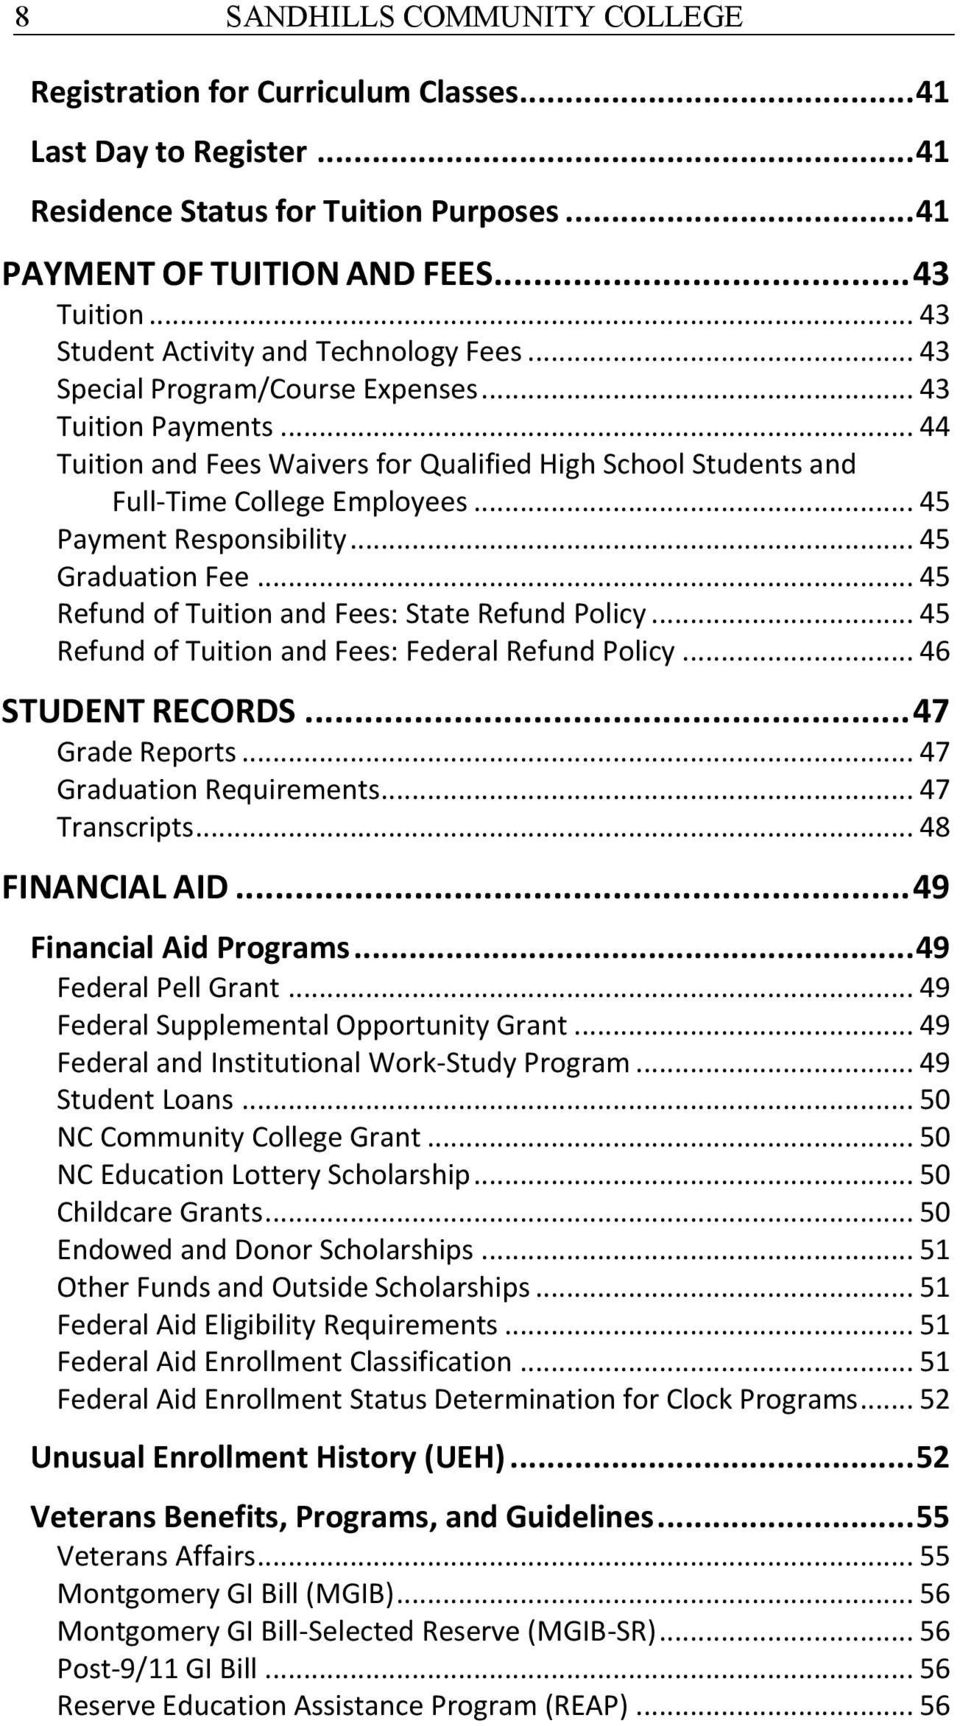 .. 45 Payment Responsibility... 45 Graduation Fee... 45 Refund of Tuition and Fees: State Refund Policy... 45 Refund of Tuition and Fees: Federal Refund Policy... 46 STUDENT RECORDS... 47 Grade Reports.